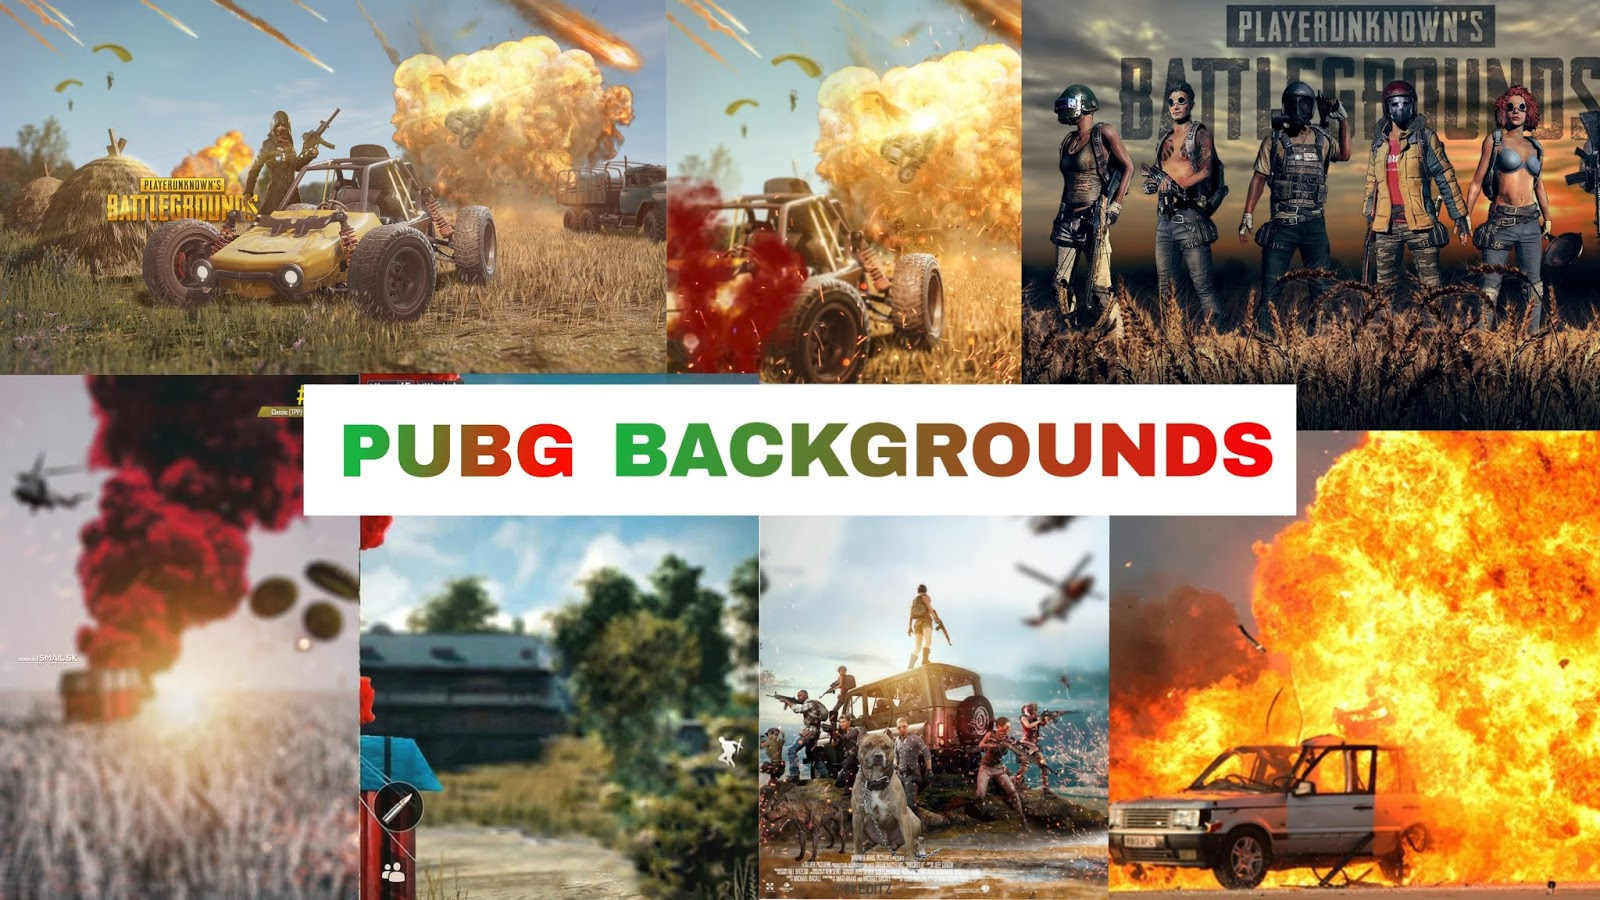 Pubg Background Png Download For Photo Editing Hd Kr Editing